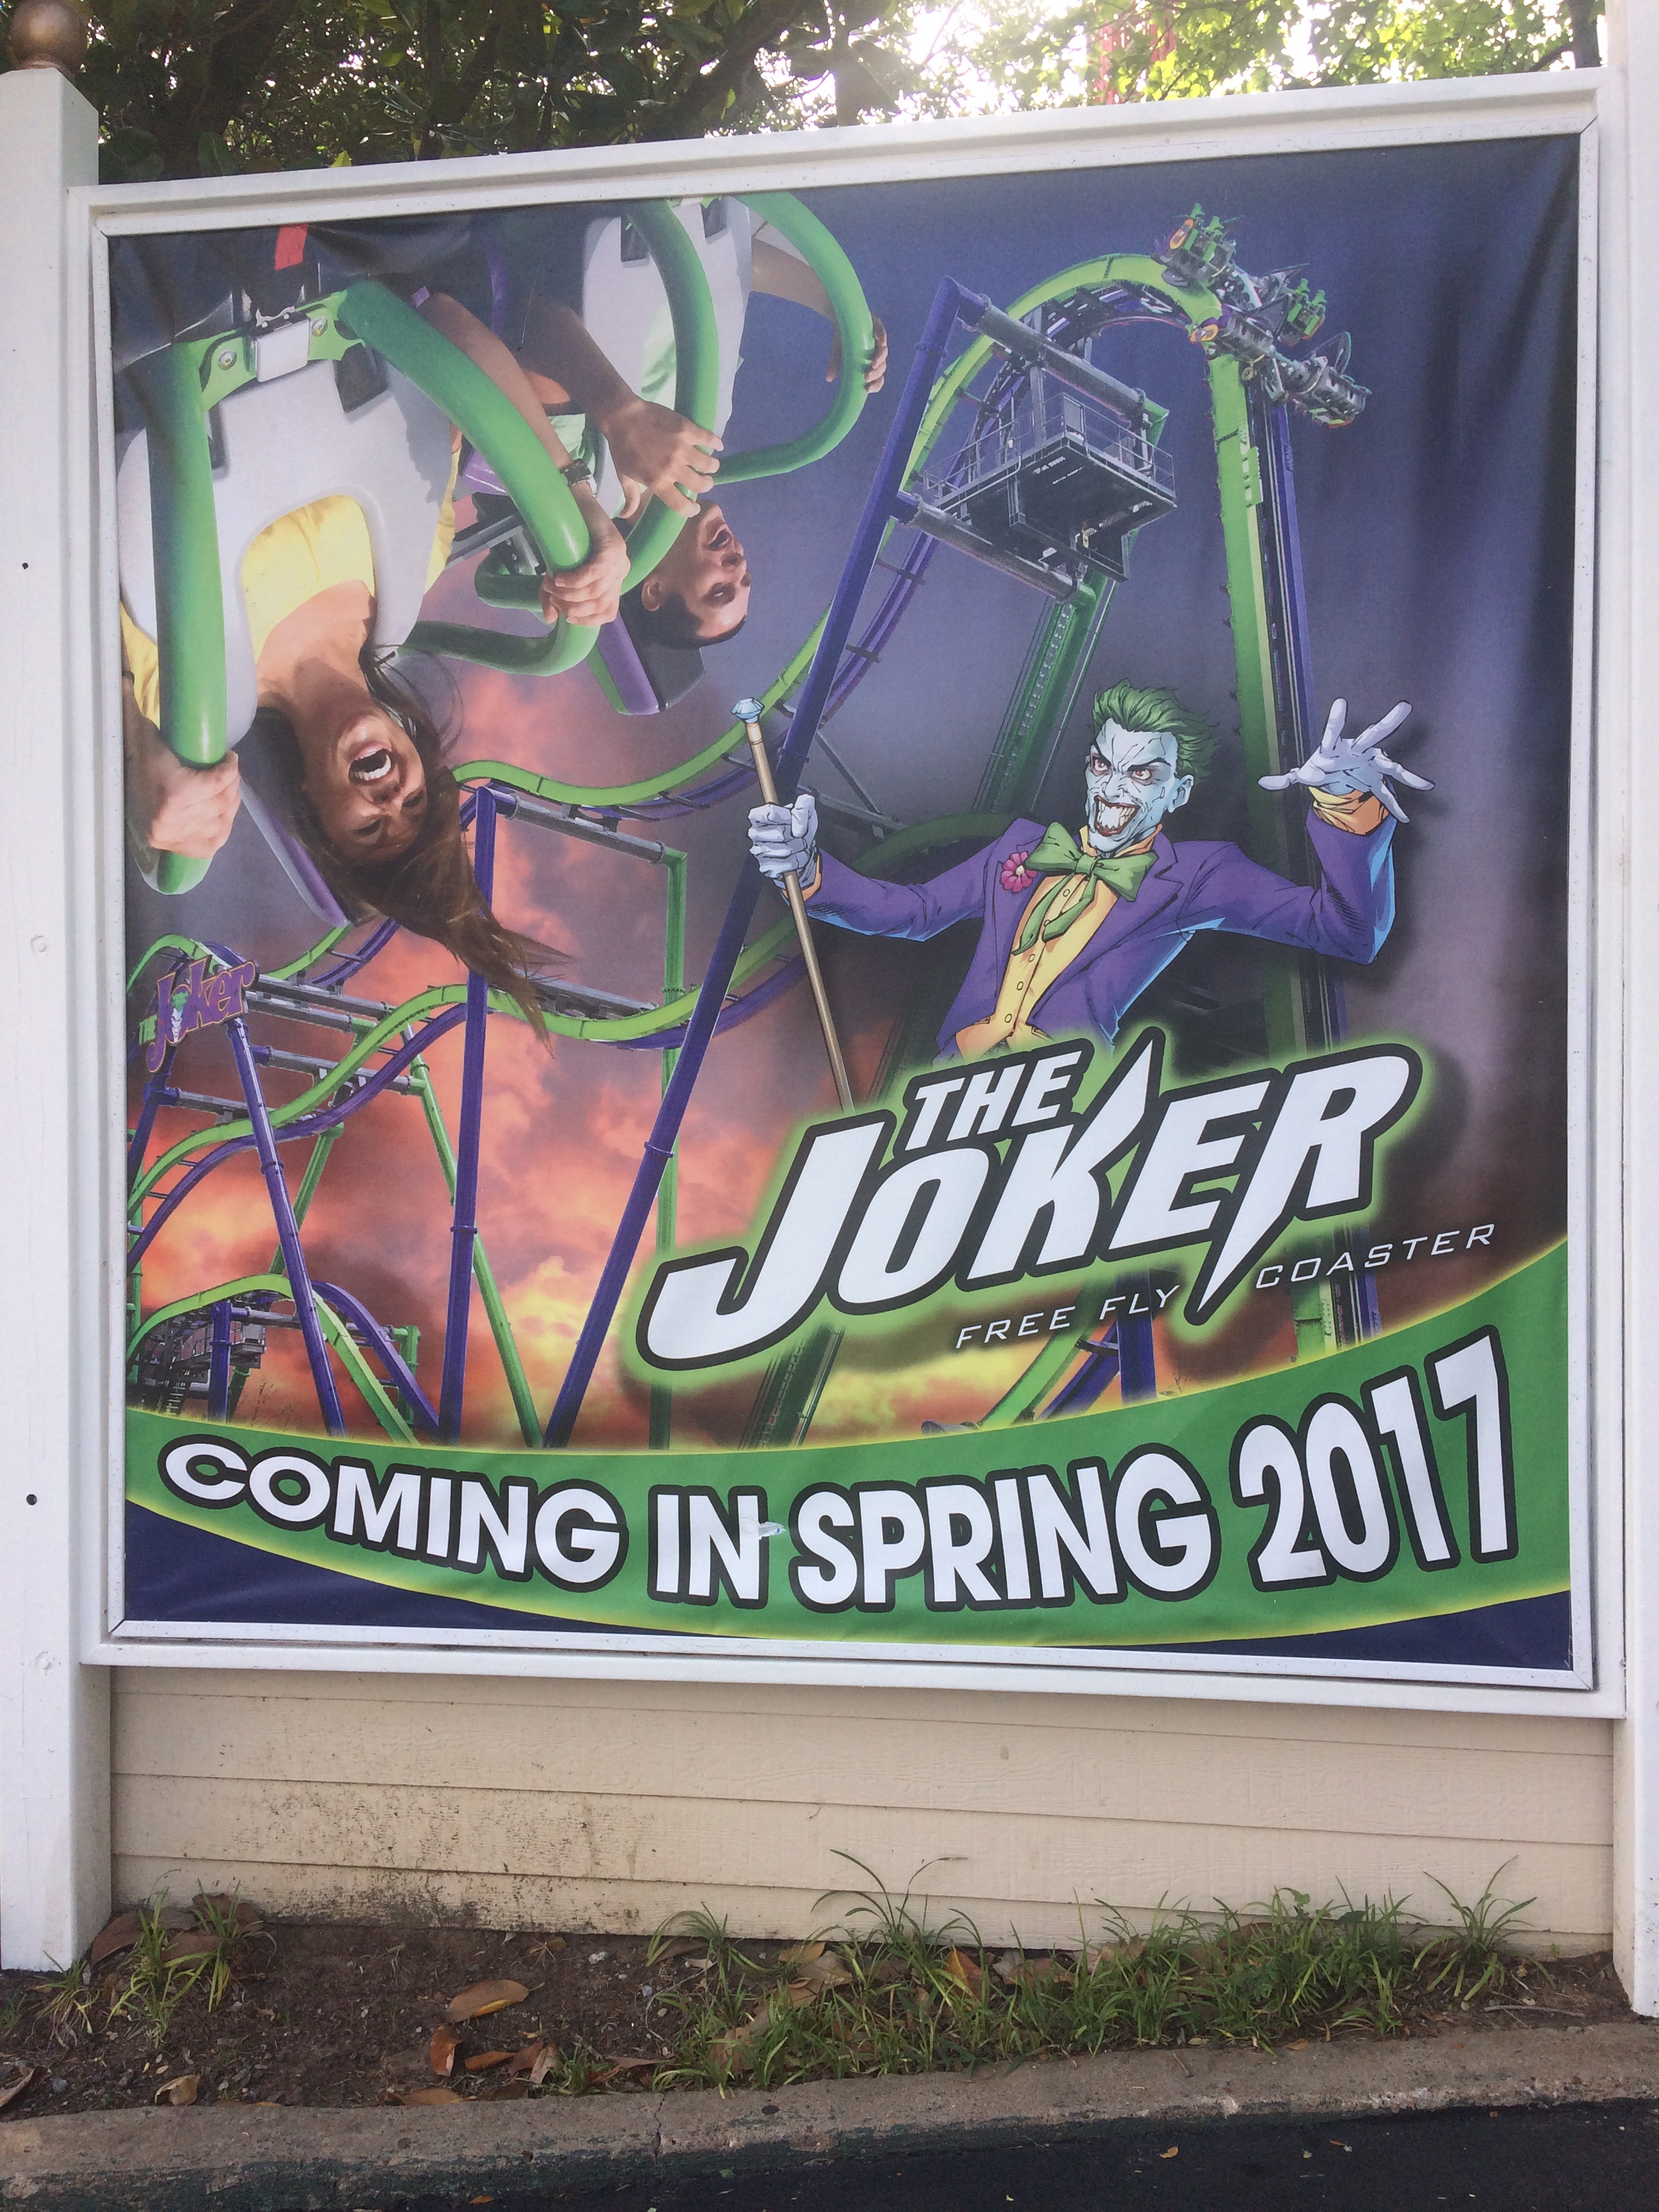 Six Flags Over Texas New Ride: The Joker